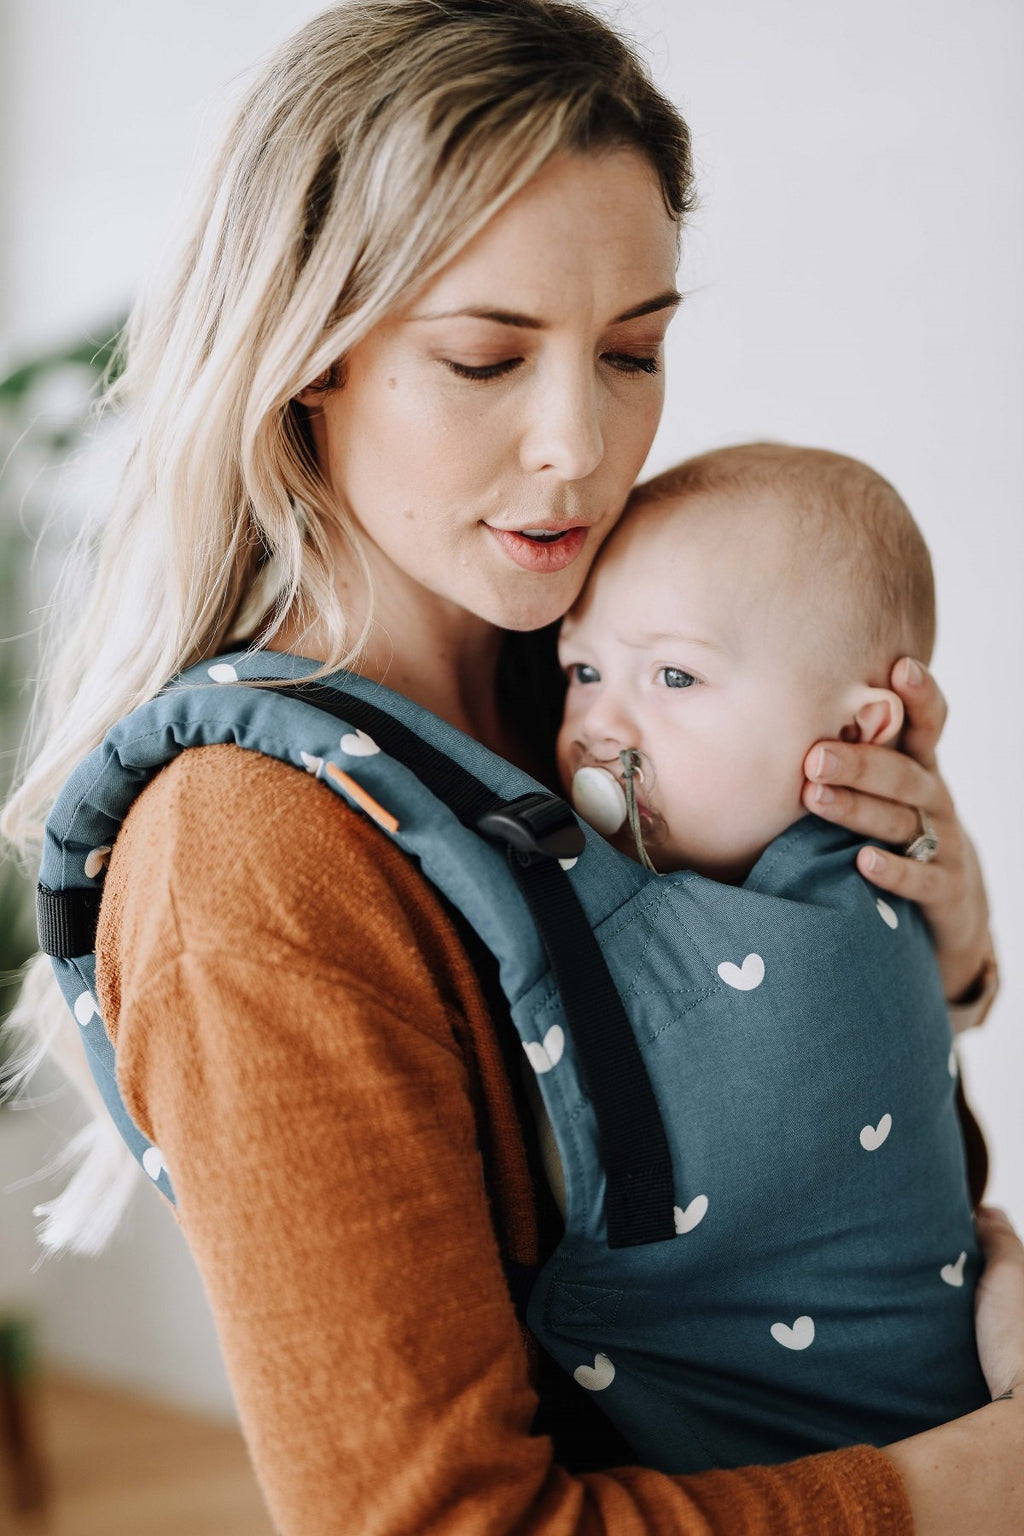 Tula Toddler Carrier - Playdate - Slings and Things